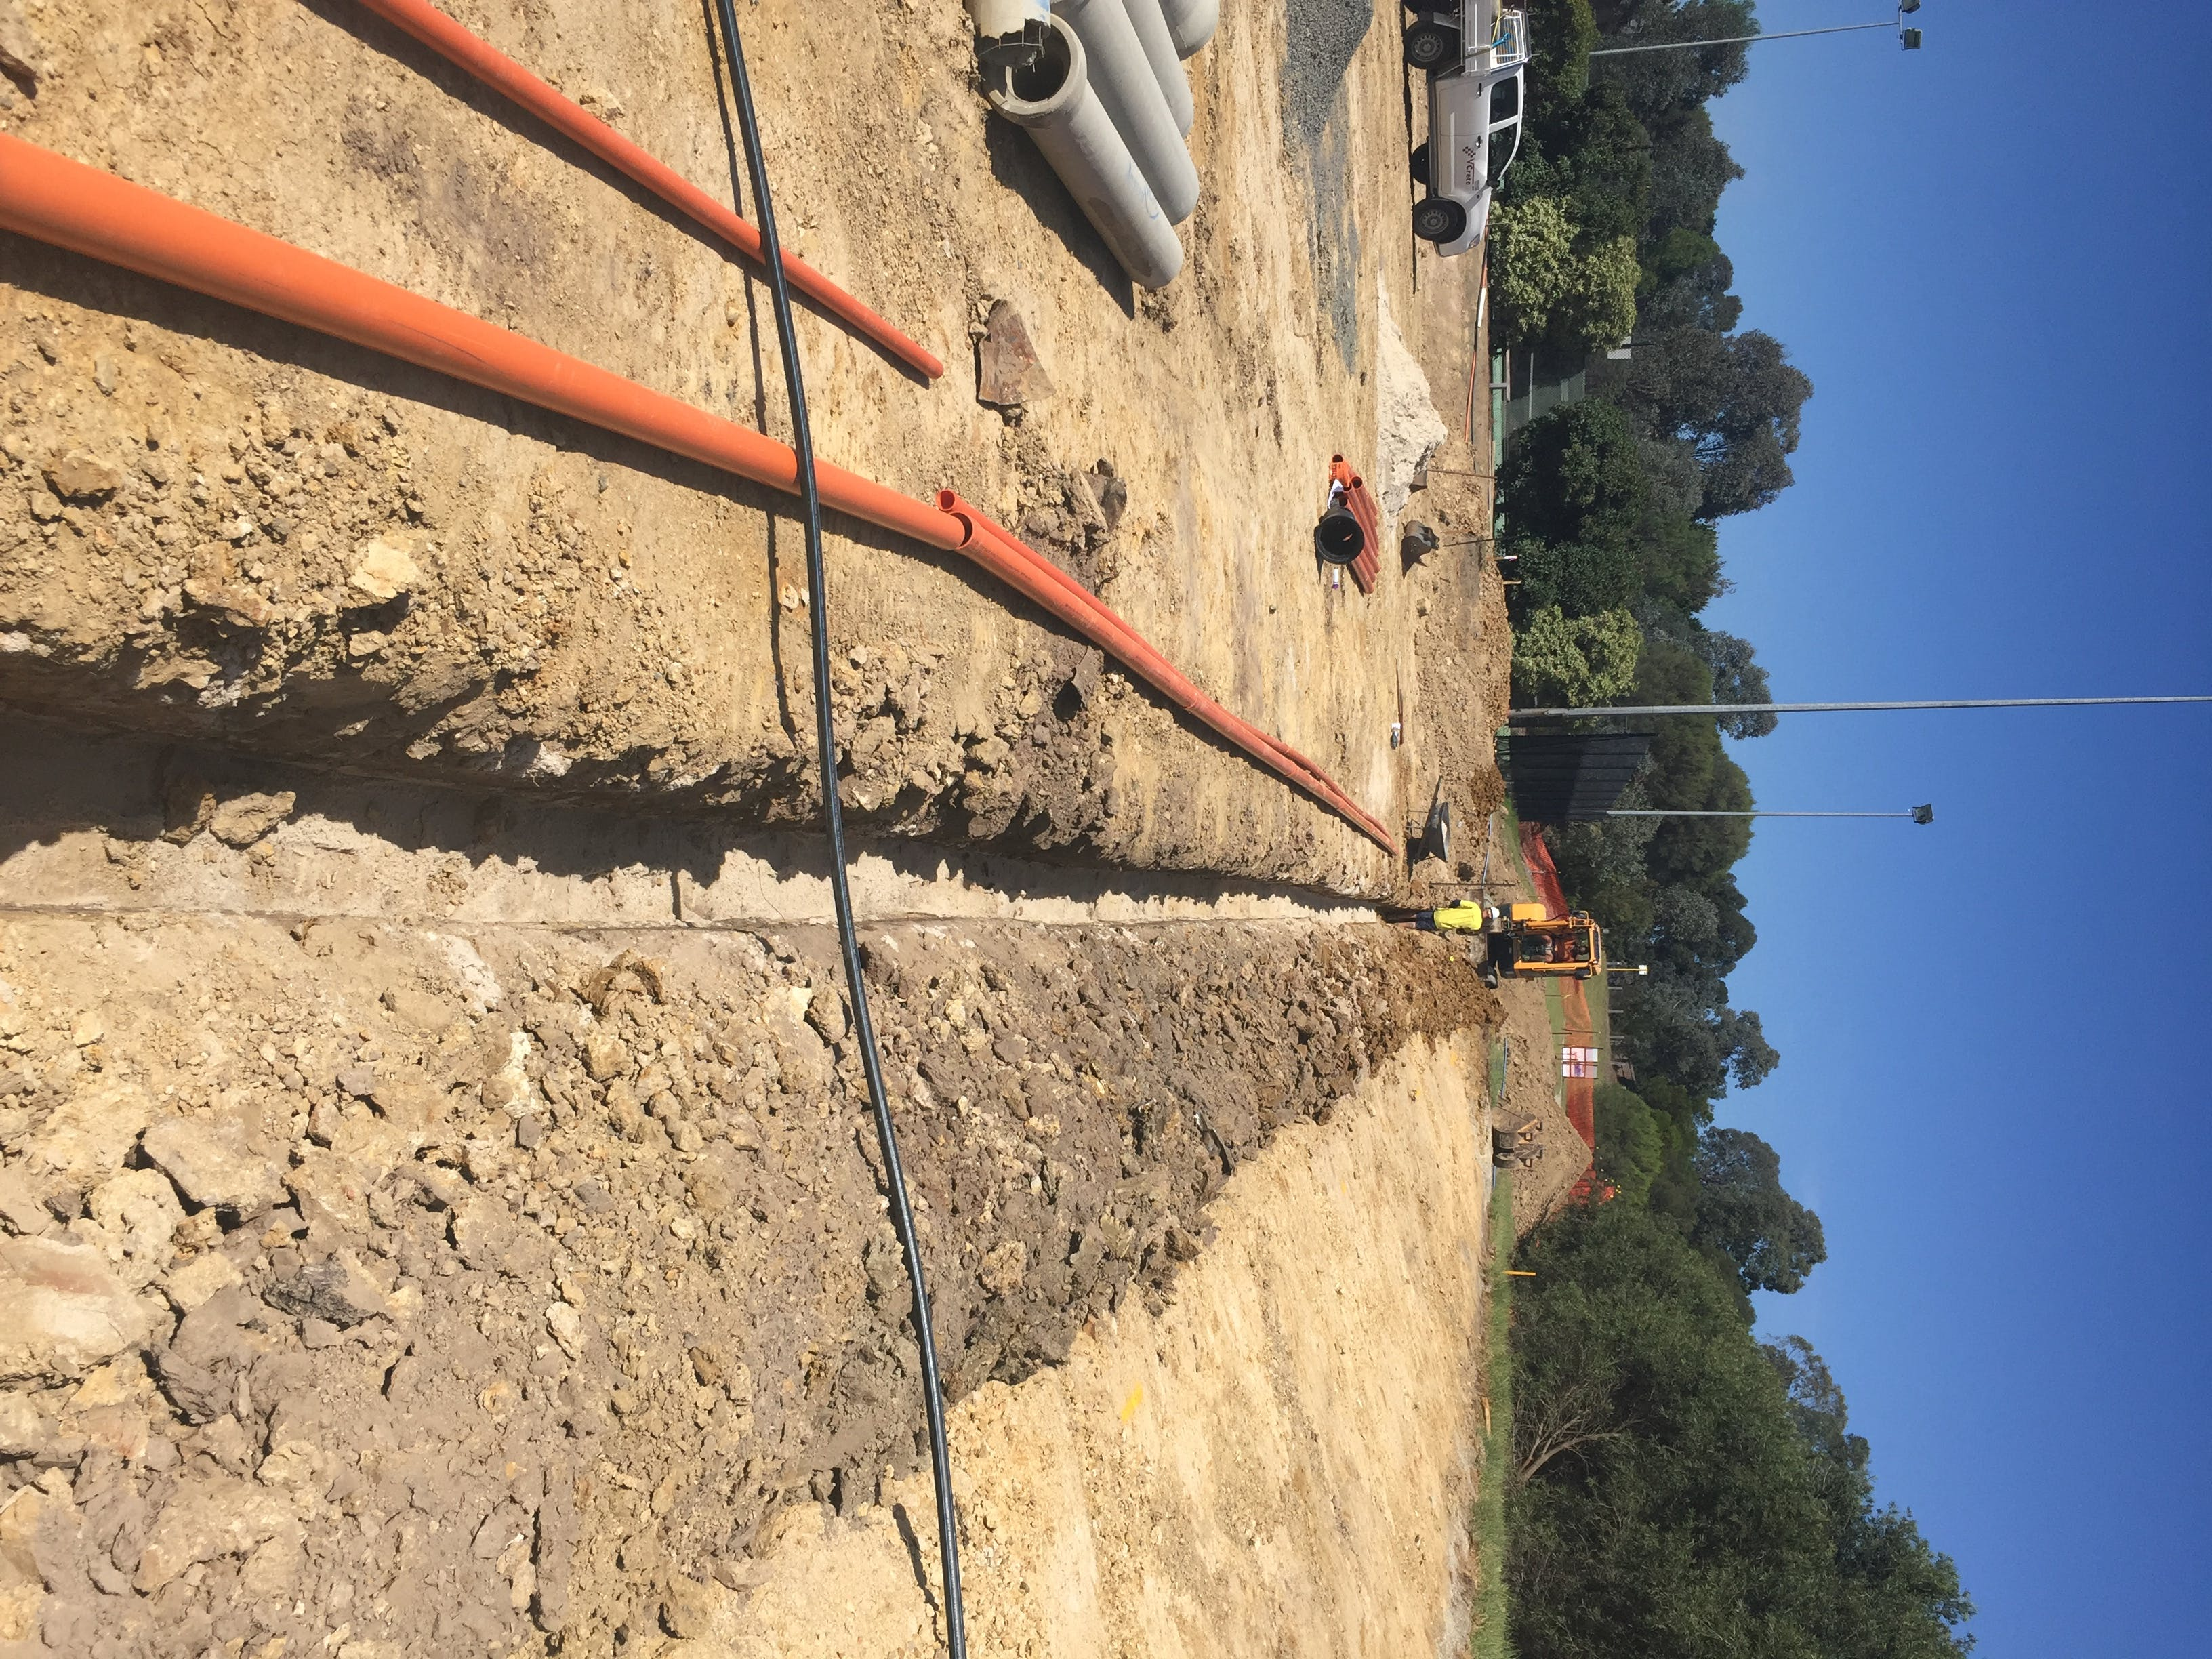 Installation of underground electrical conduits for future upgrades to public lighting.